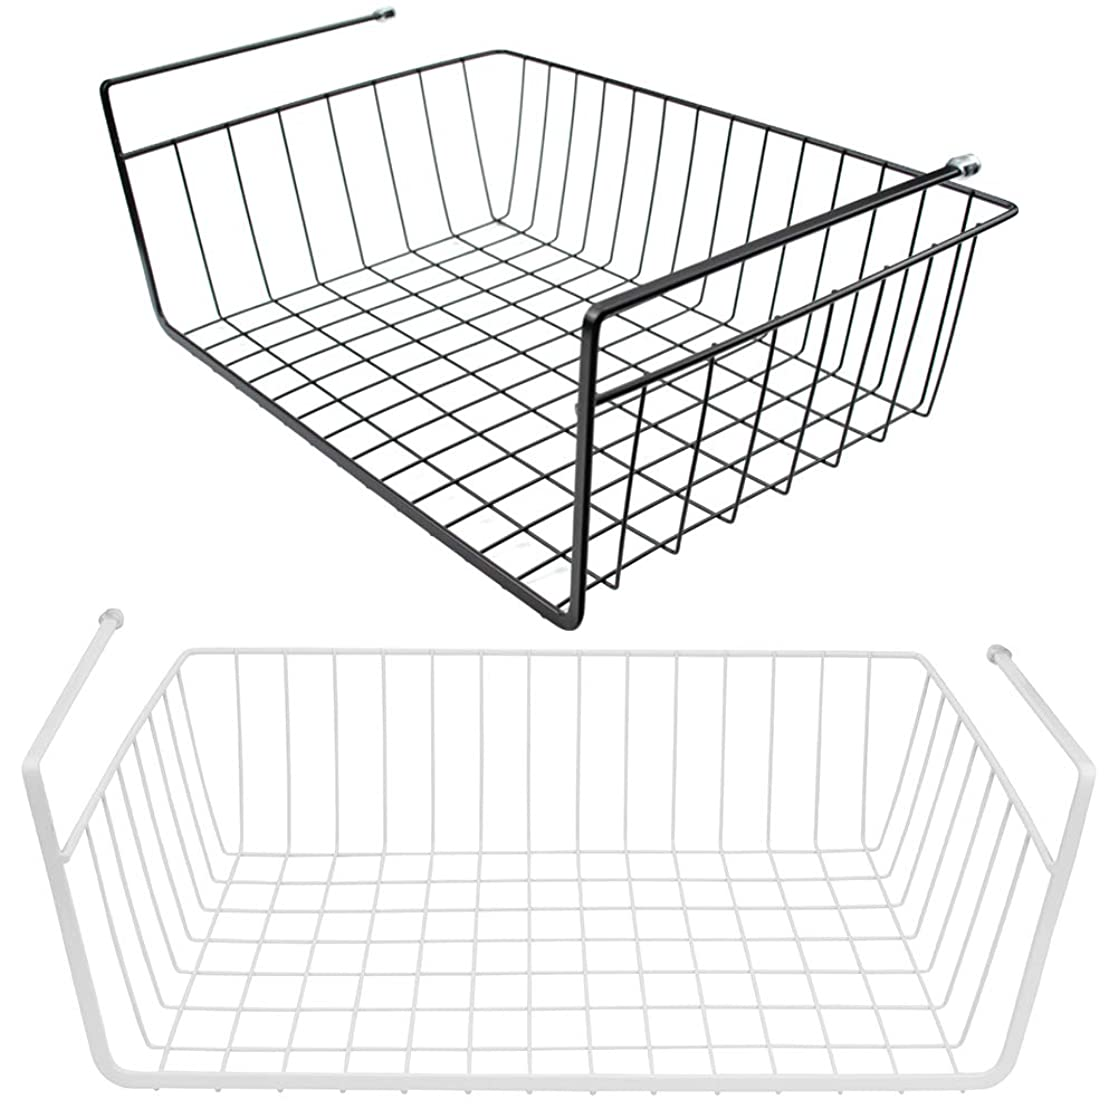 Tebery 2 Pack Under Cabinet Storage Shelf Wire Basket Organizer Fit Dual Hooks for Kitchen Pantry Desk Bookshelf - White & Black